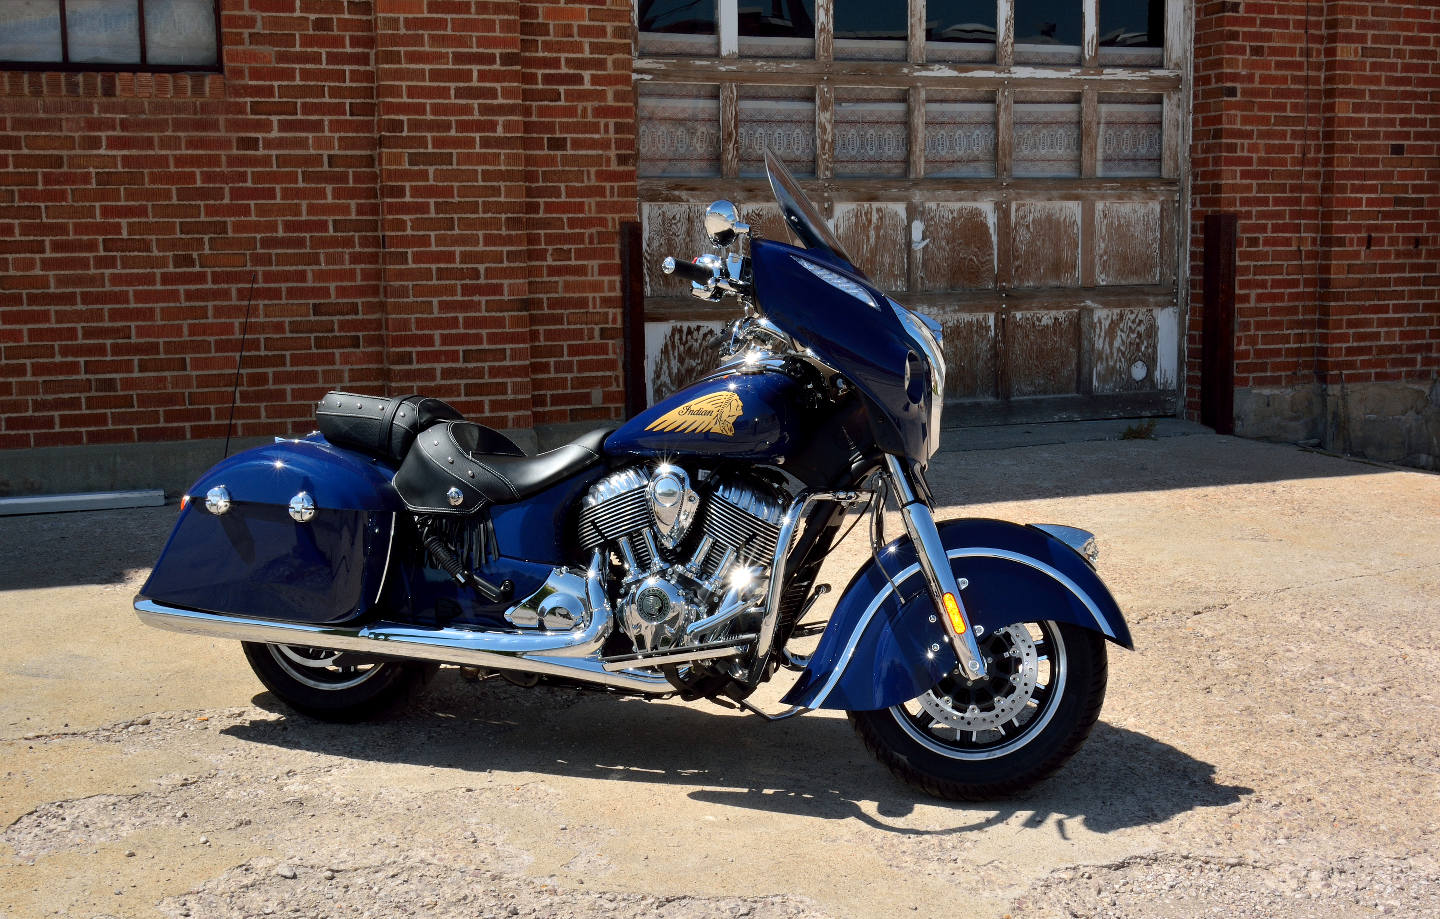 Motorcycle Dealerships Near Me >> Free Download Indian Chief Motorcycle 2013 Suzuki Motorcycle